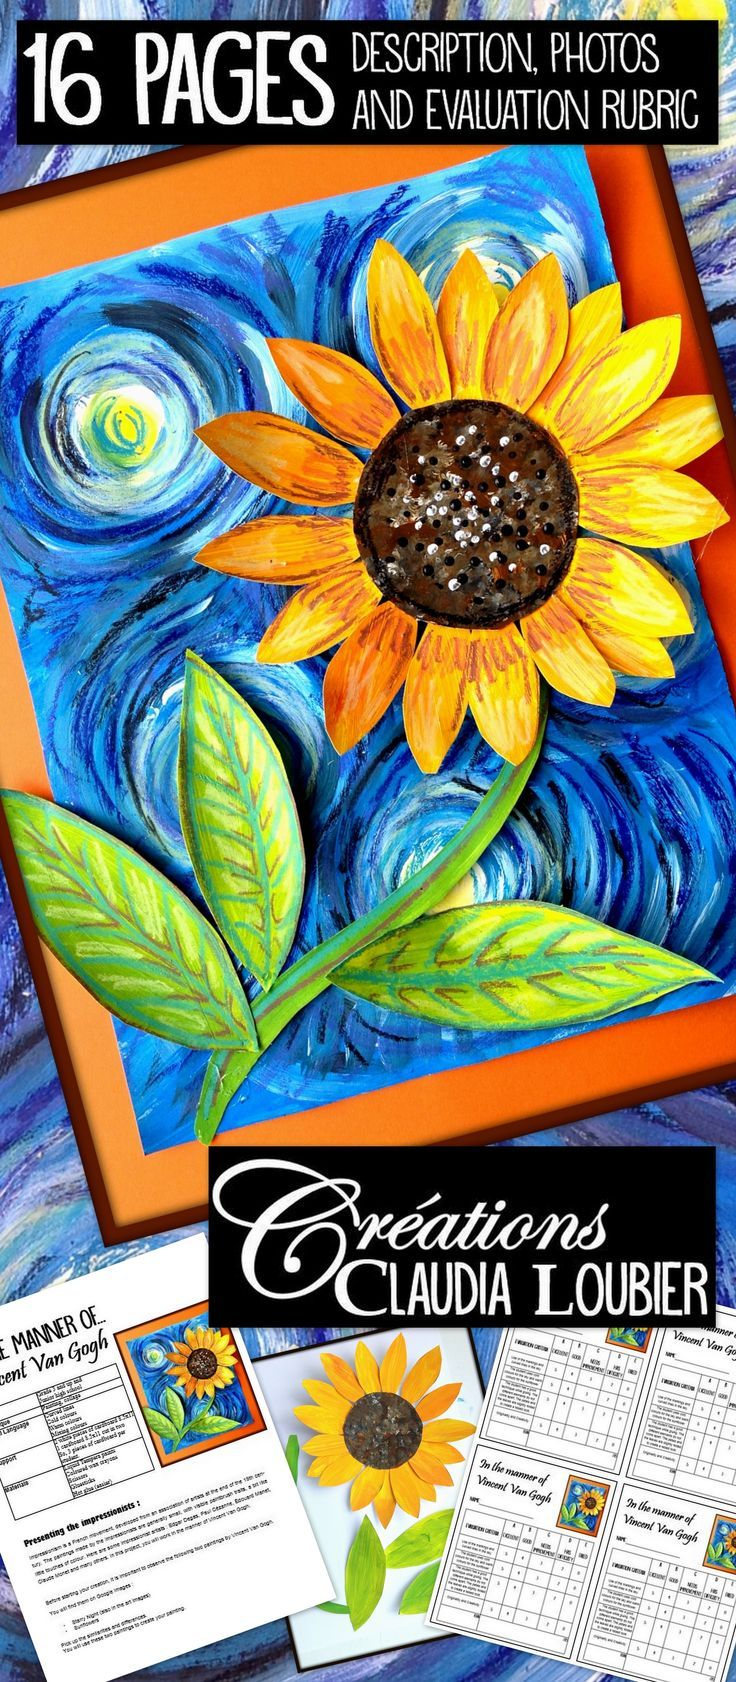 This project helps you discover two different paintings by Vincent Van Gogh: ''Starry Night'' and ''Sunflowers''. Create your own unique painting, working in the same manner as the impressionist artists. The mixing of colours, curved lines, and cold and warm colours will be addressed. You will need liquid Tempera paints, white cardboard and wax crayons. Welcome the spring with this 'sunny' project. Instructions, photos and evaluation rubric are included.